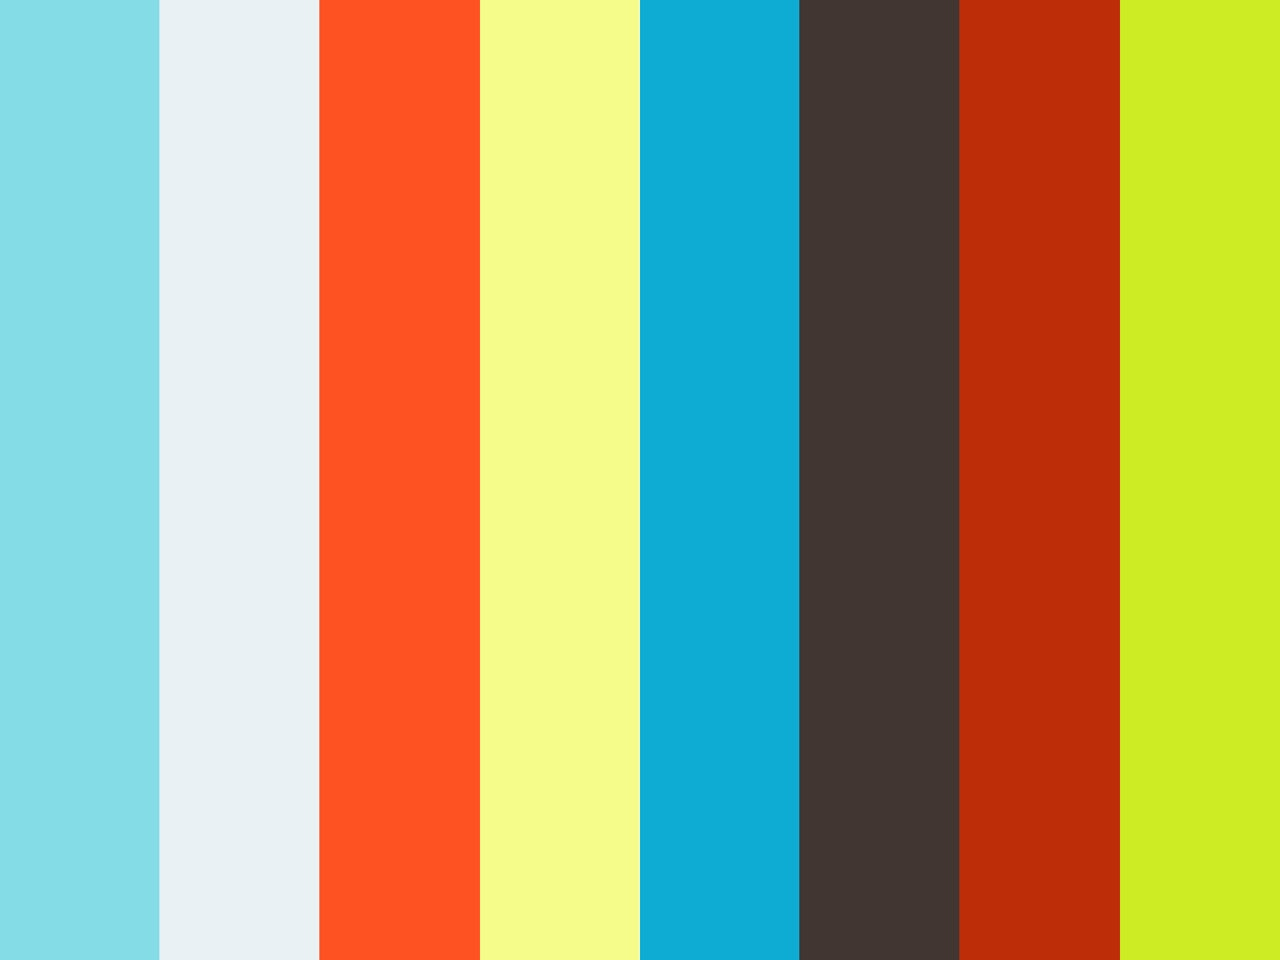 City Commission Meeting - August 4, 2015